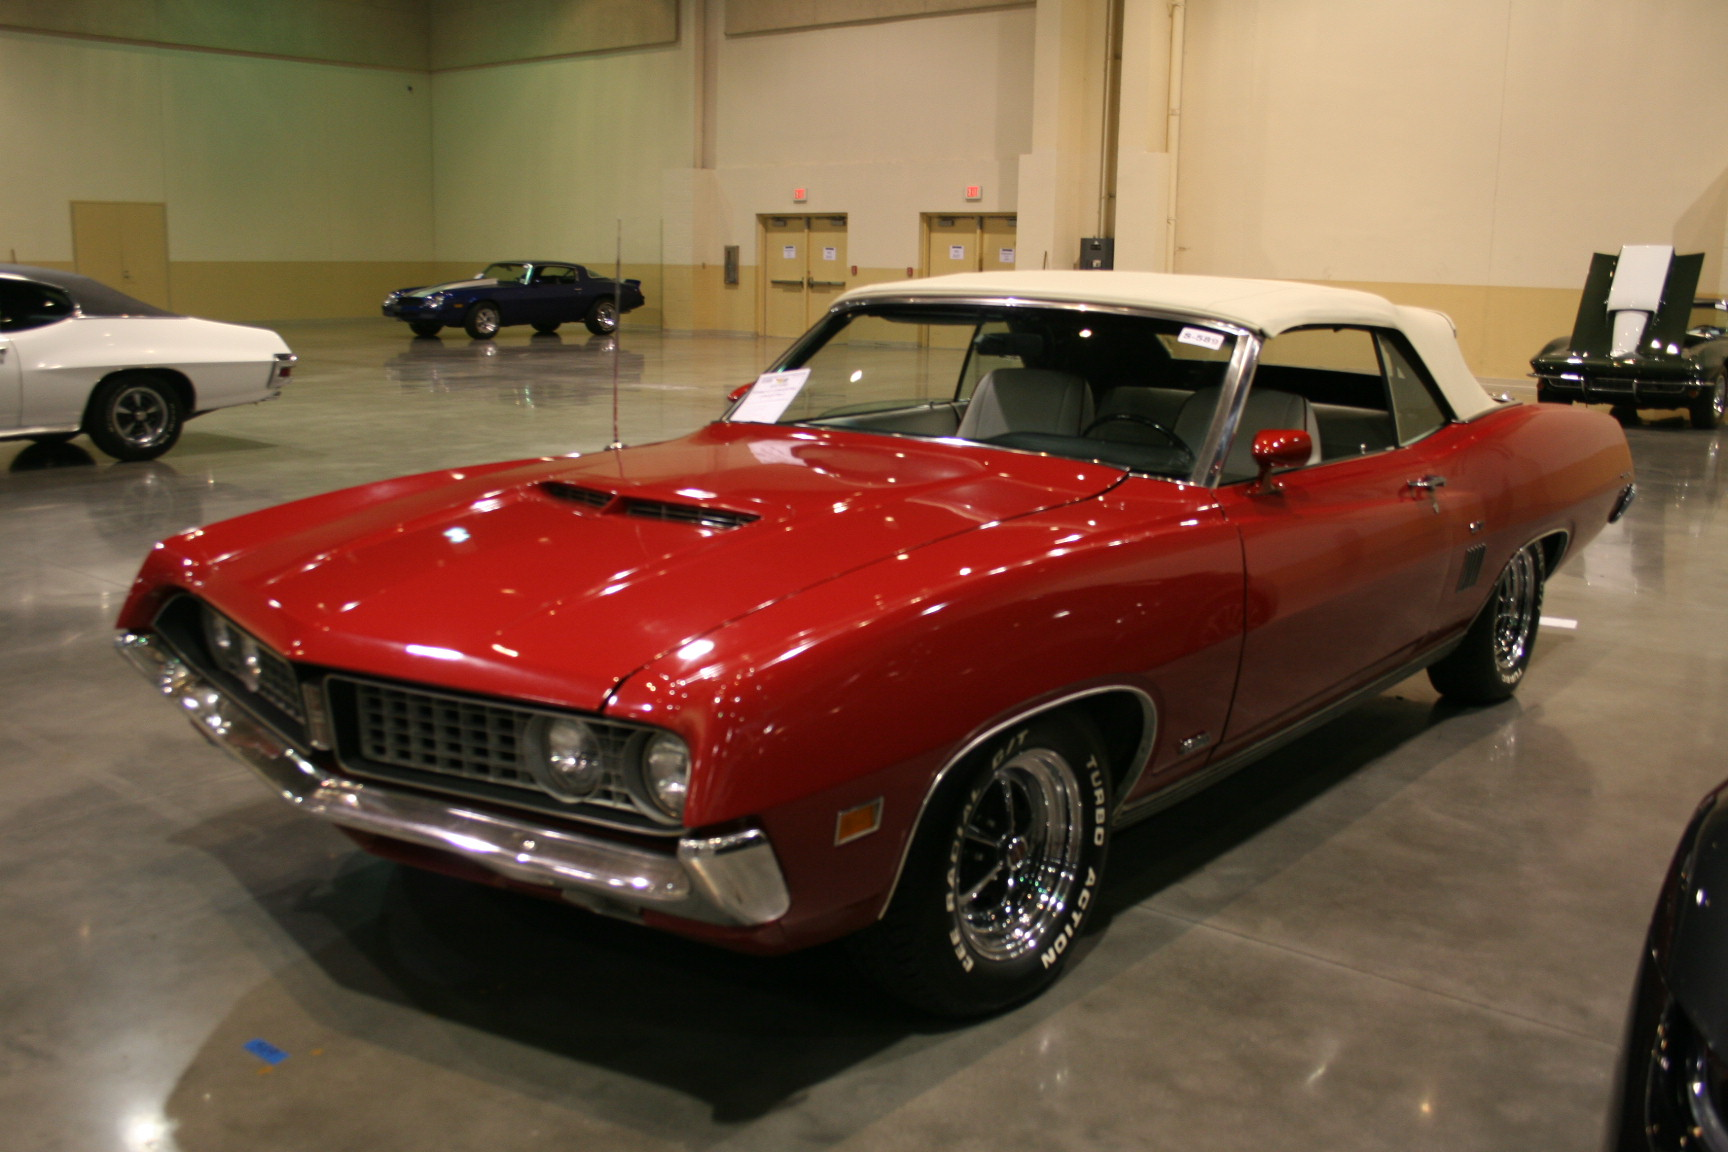 2nd Image Of A 1970 Ford Torino Gt Convertible